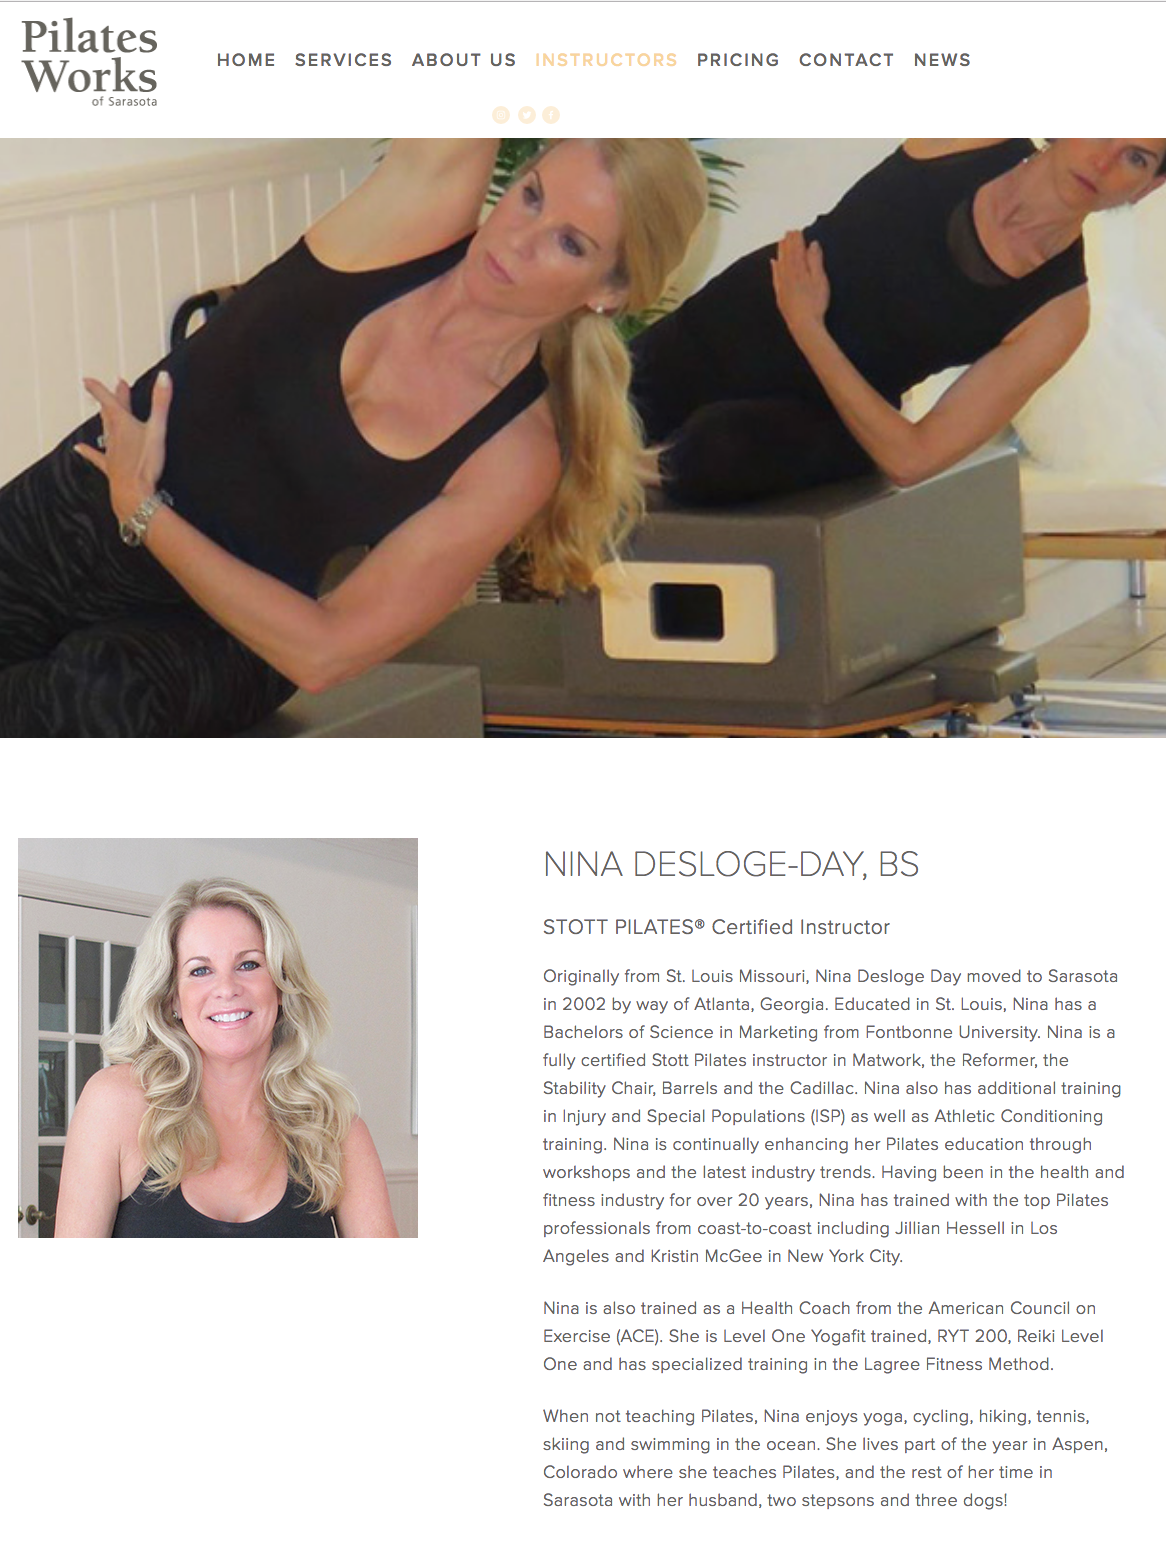 pilates-works-of-sarasota-nina-desloge-day-page.png